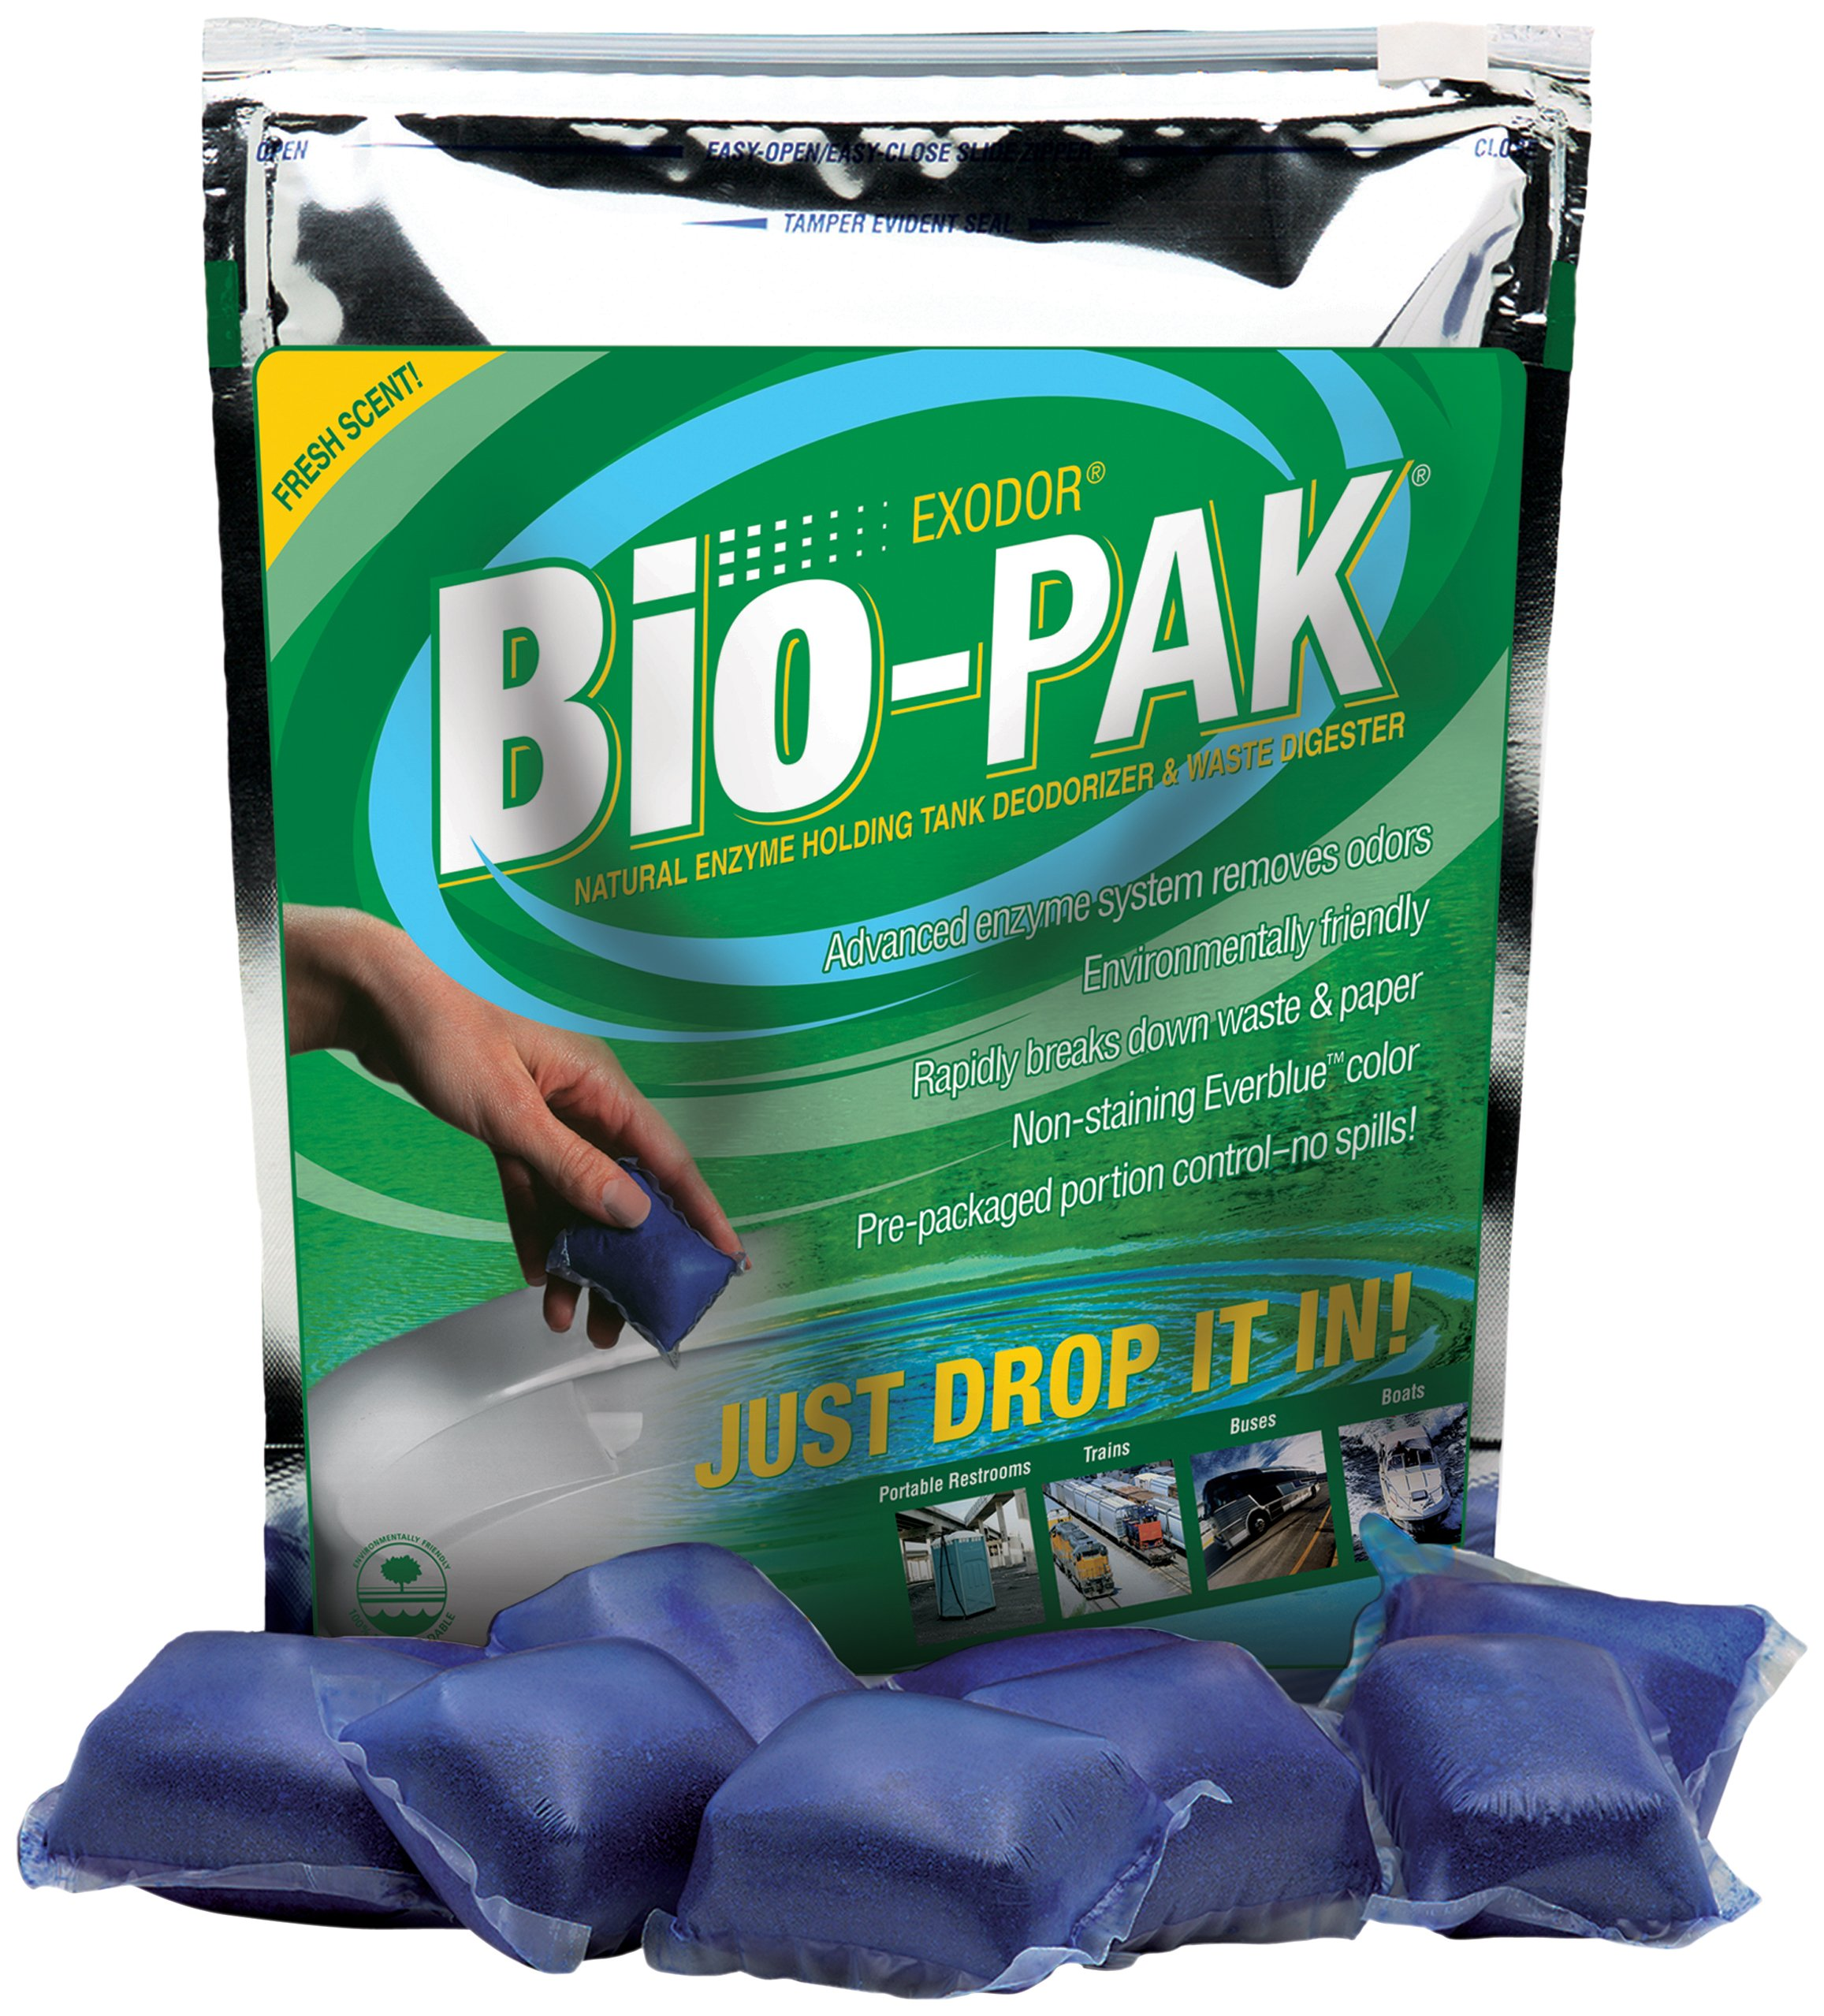 Walex BIO-11550 Bio-Pak Natural Holding Tank Deodorizer and Waste Digester Drop-Ins, Mint Scent (Pack of 50) by Walex